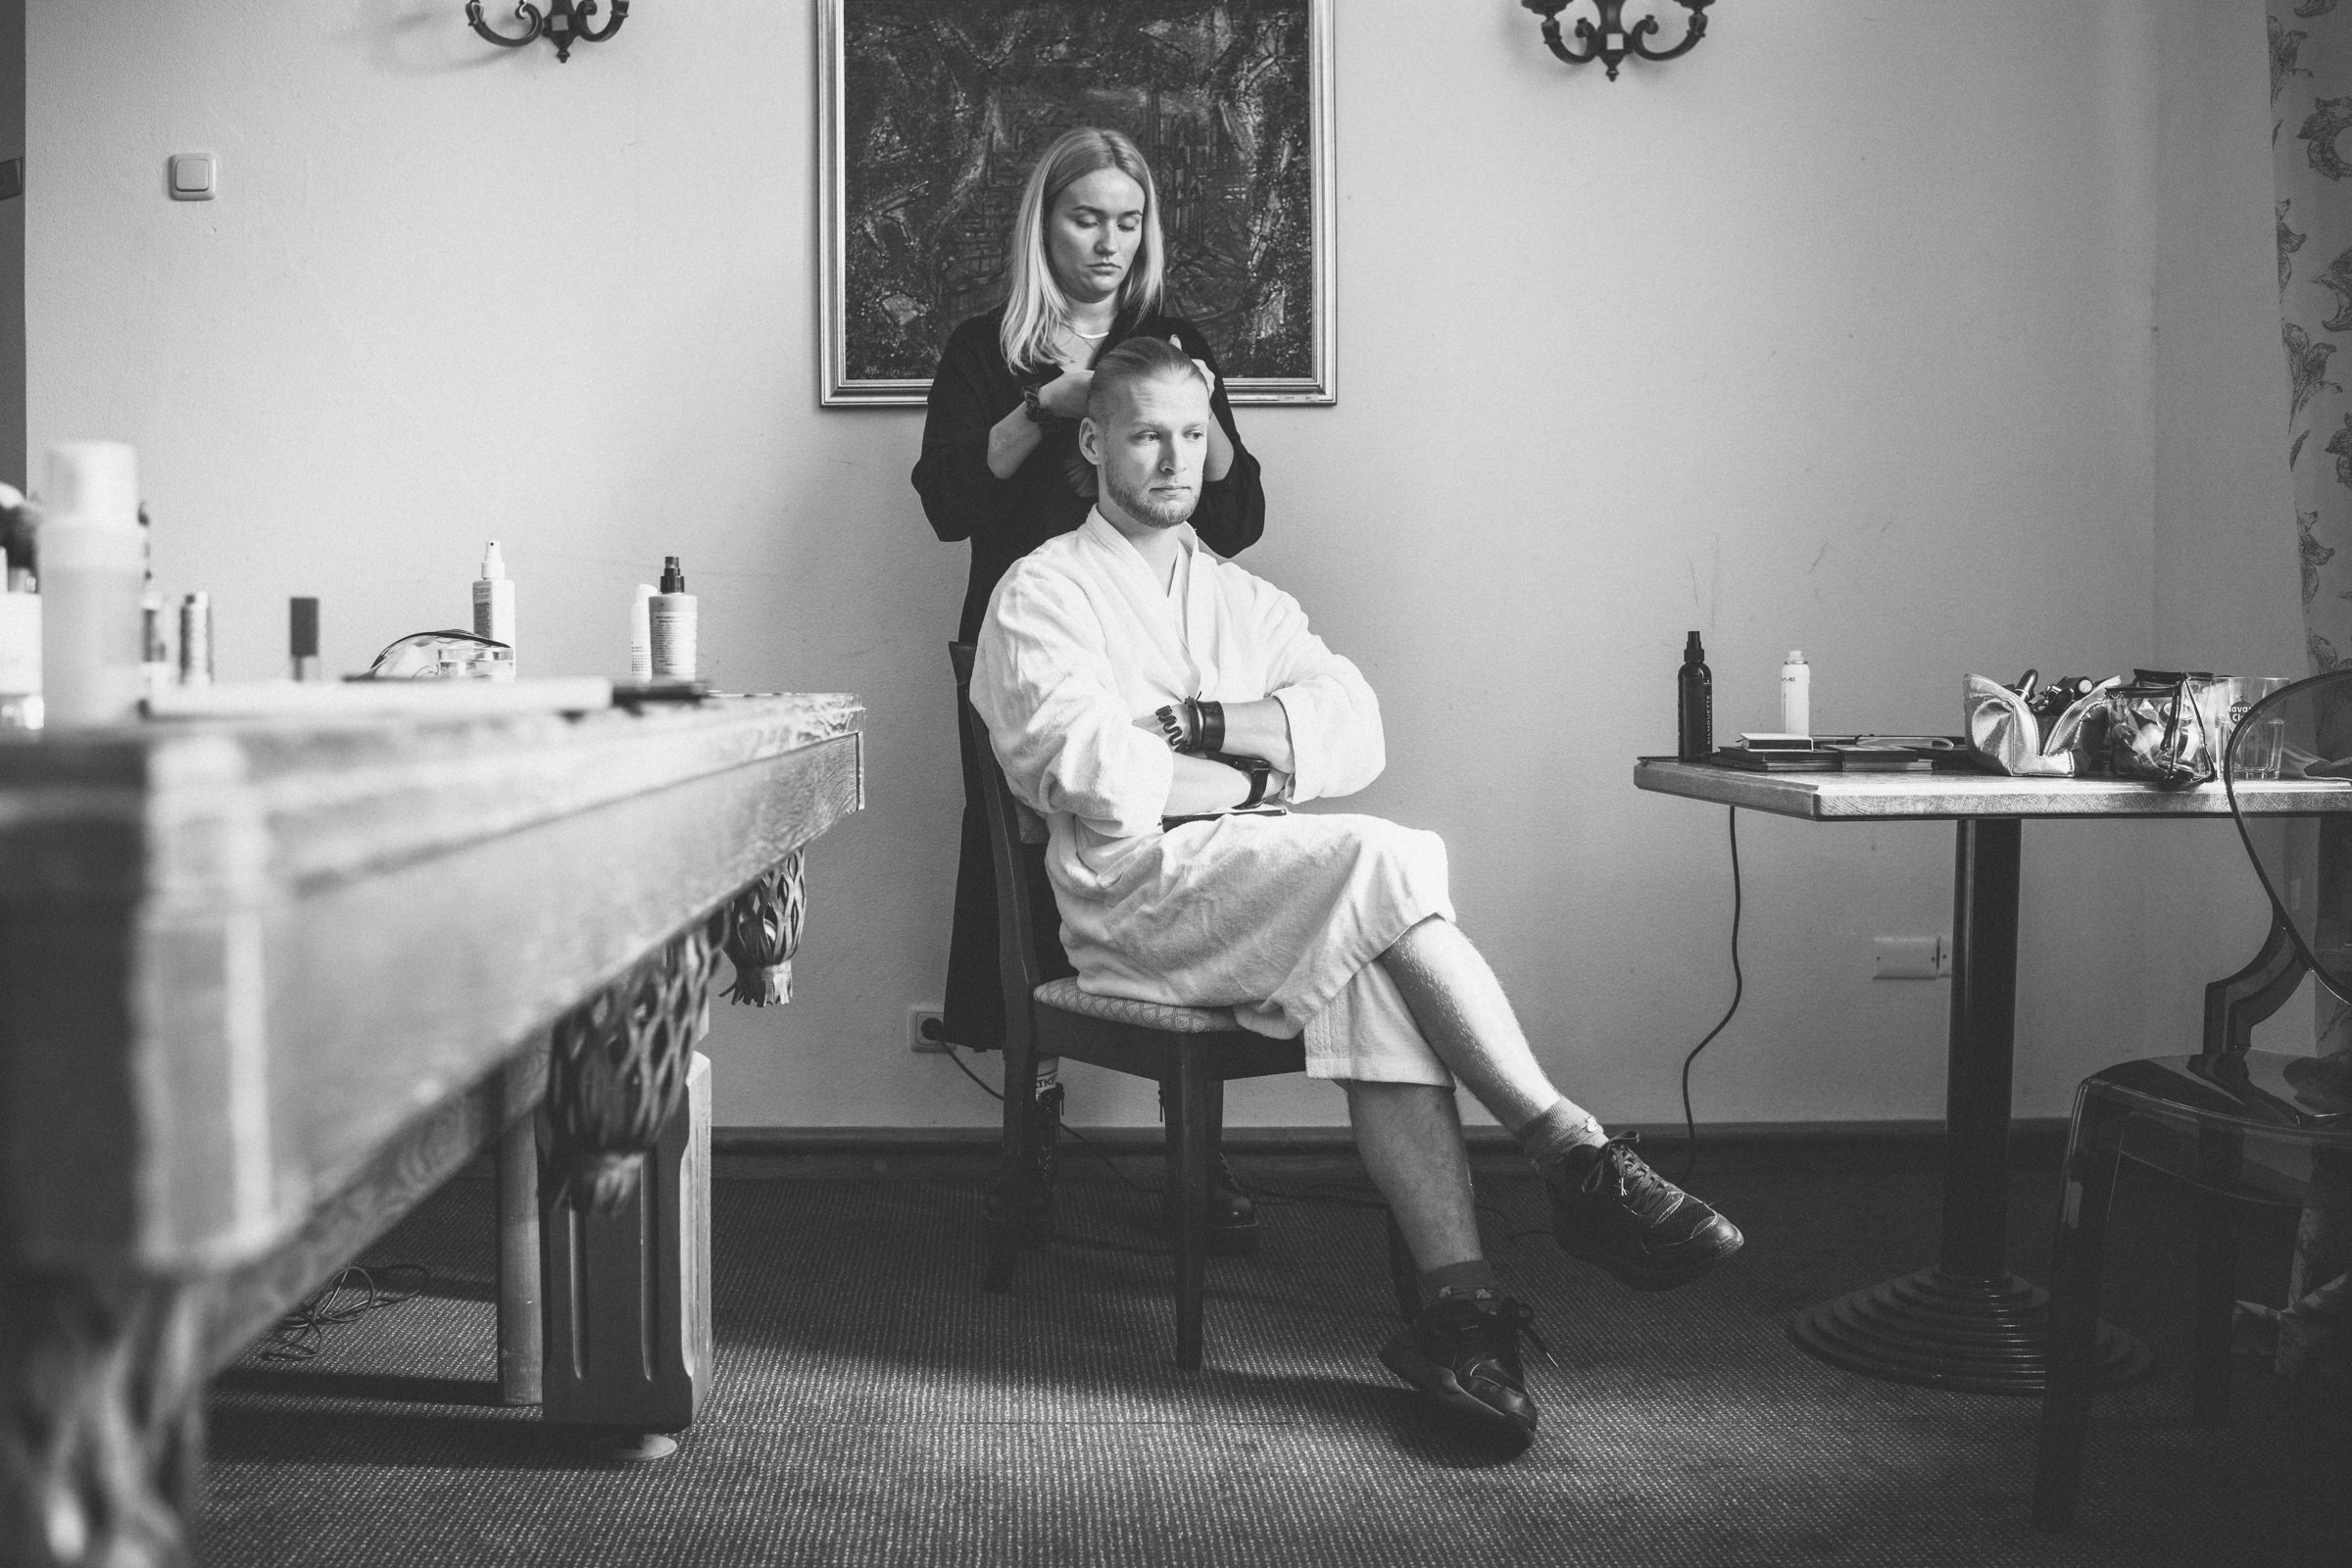 Groom having his hair styled - photo by Tomas Juskaitis Photography